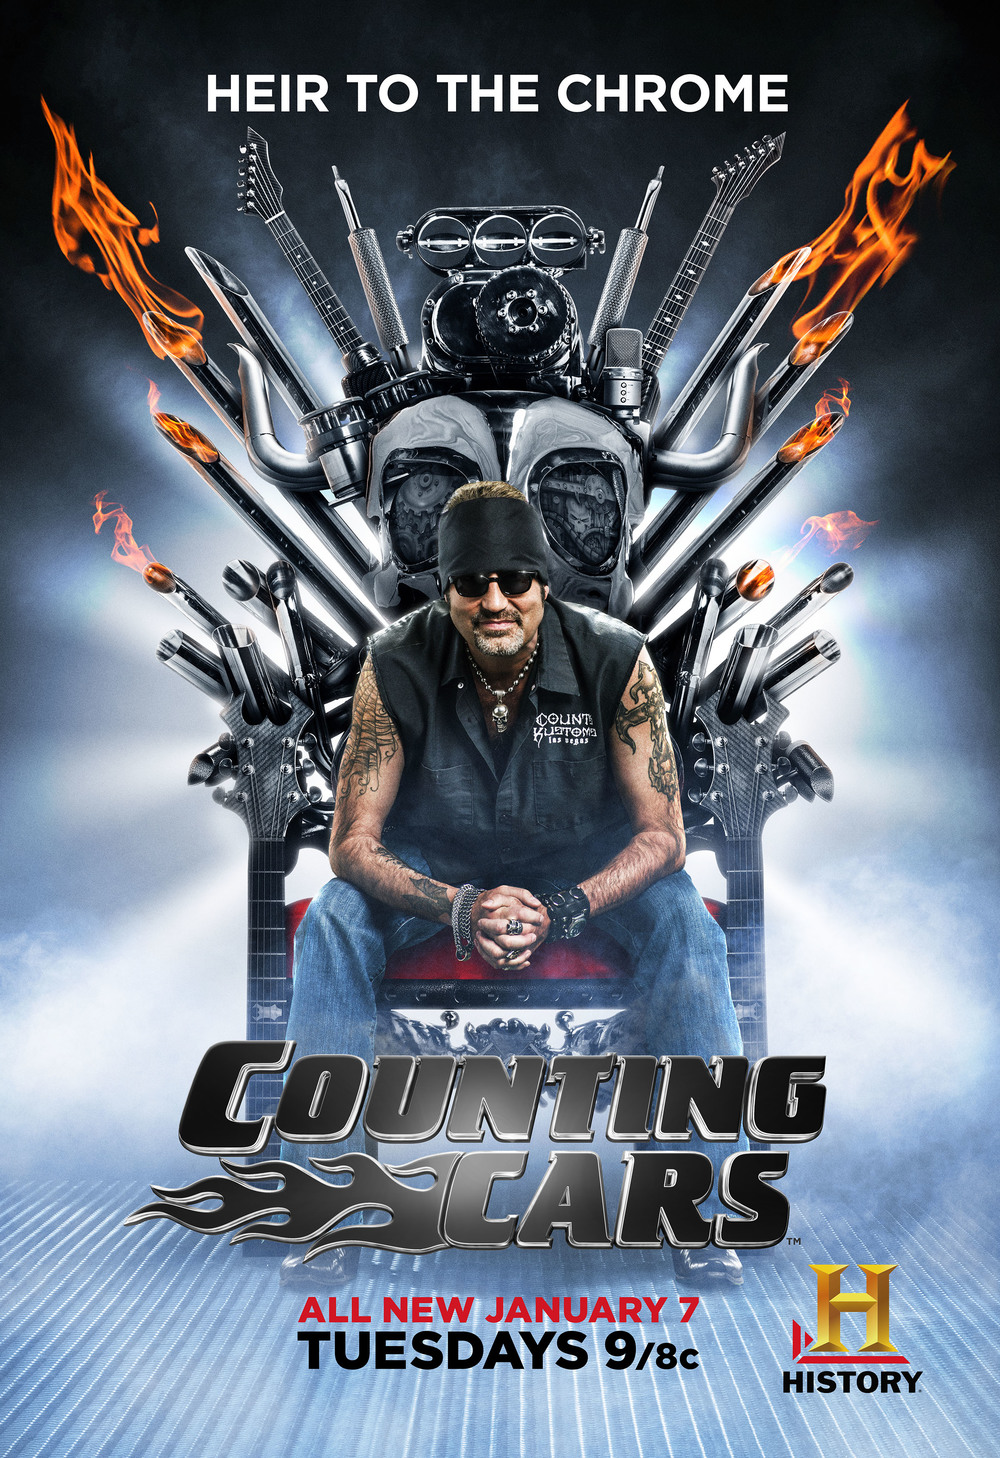 Counting-Cars-Throne1a.jpg